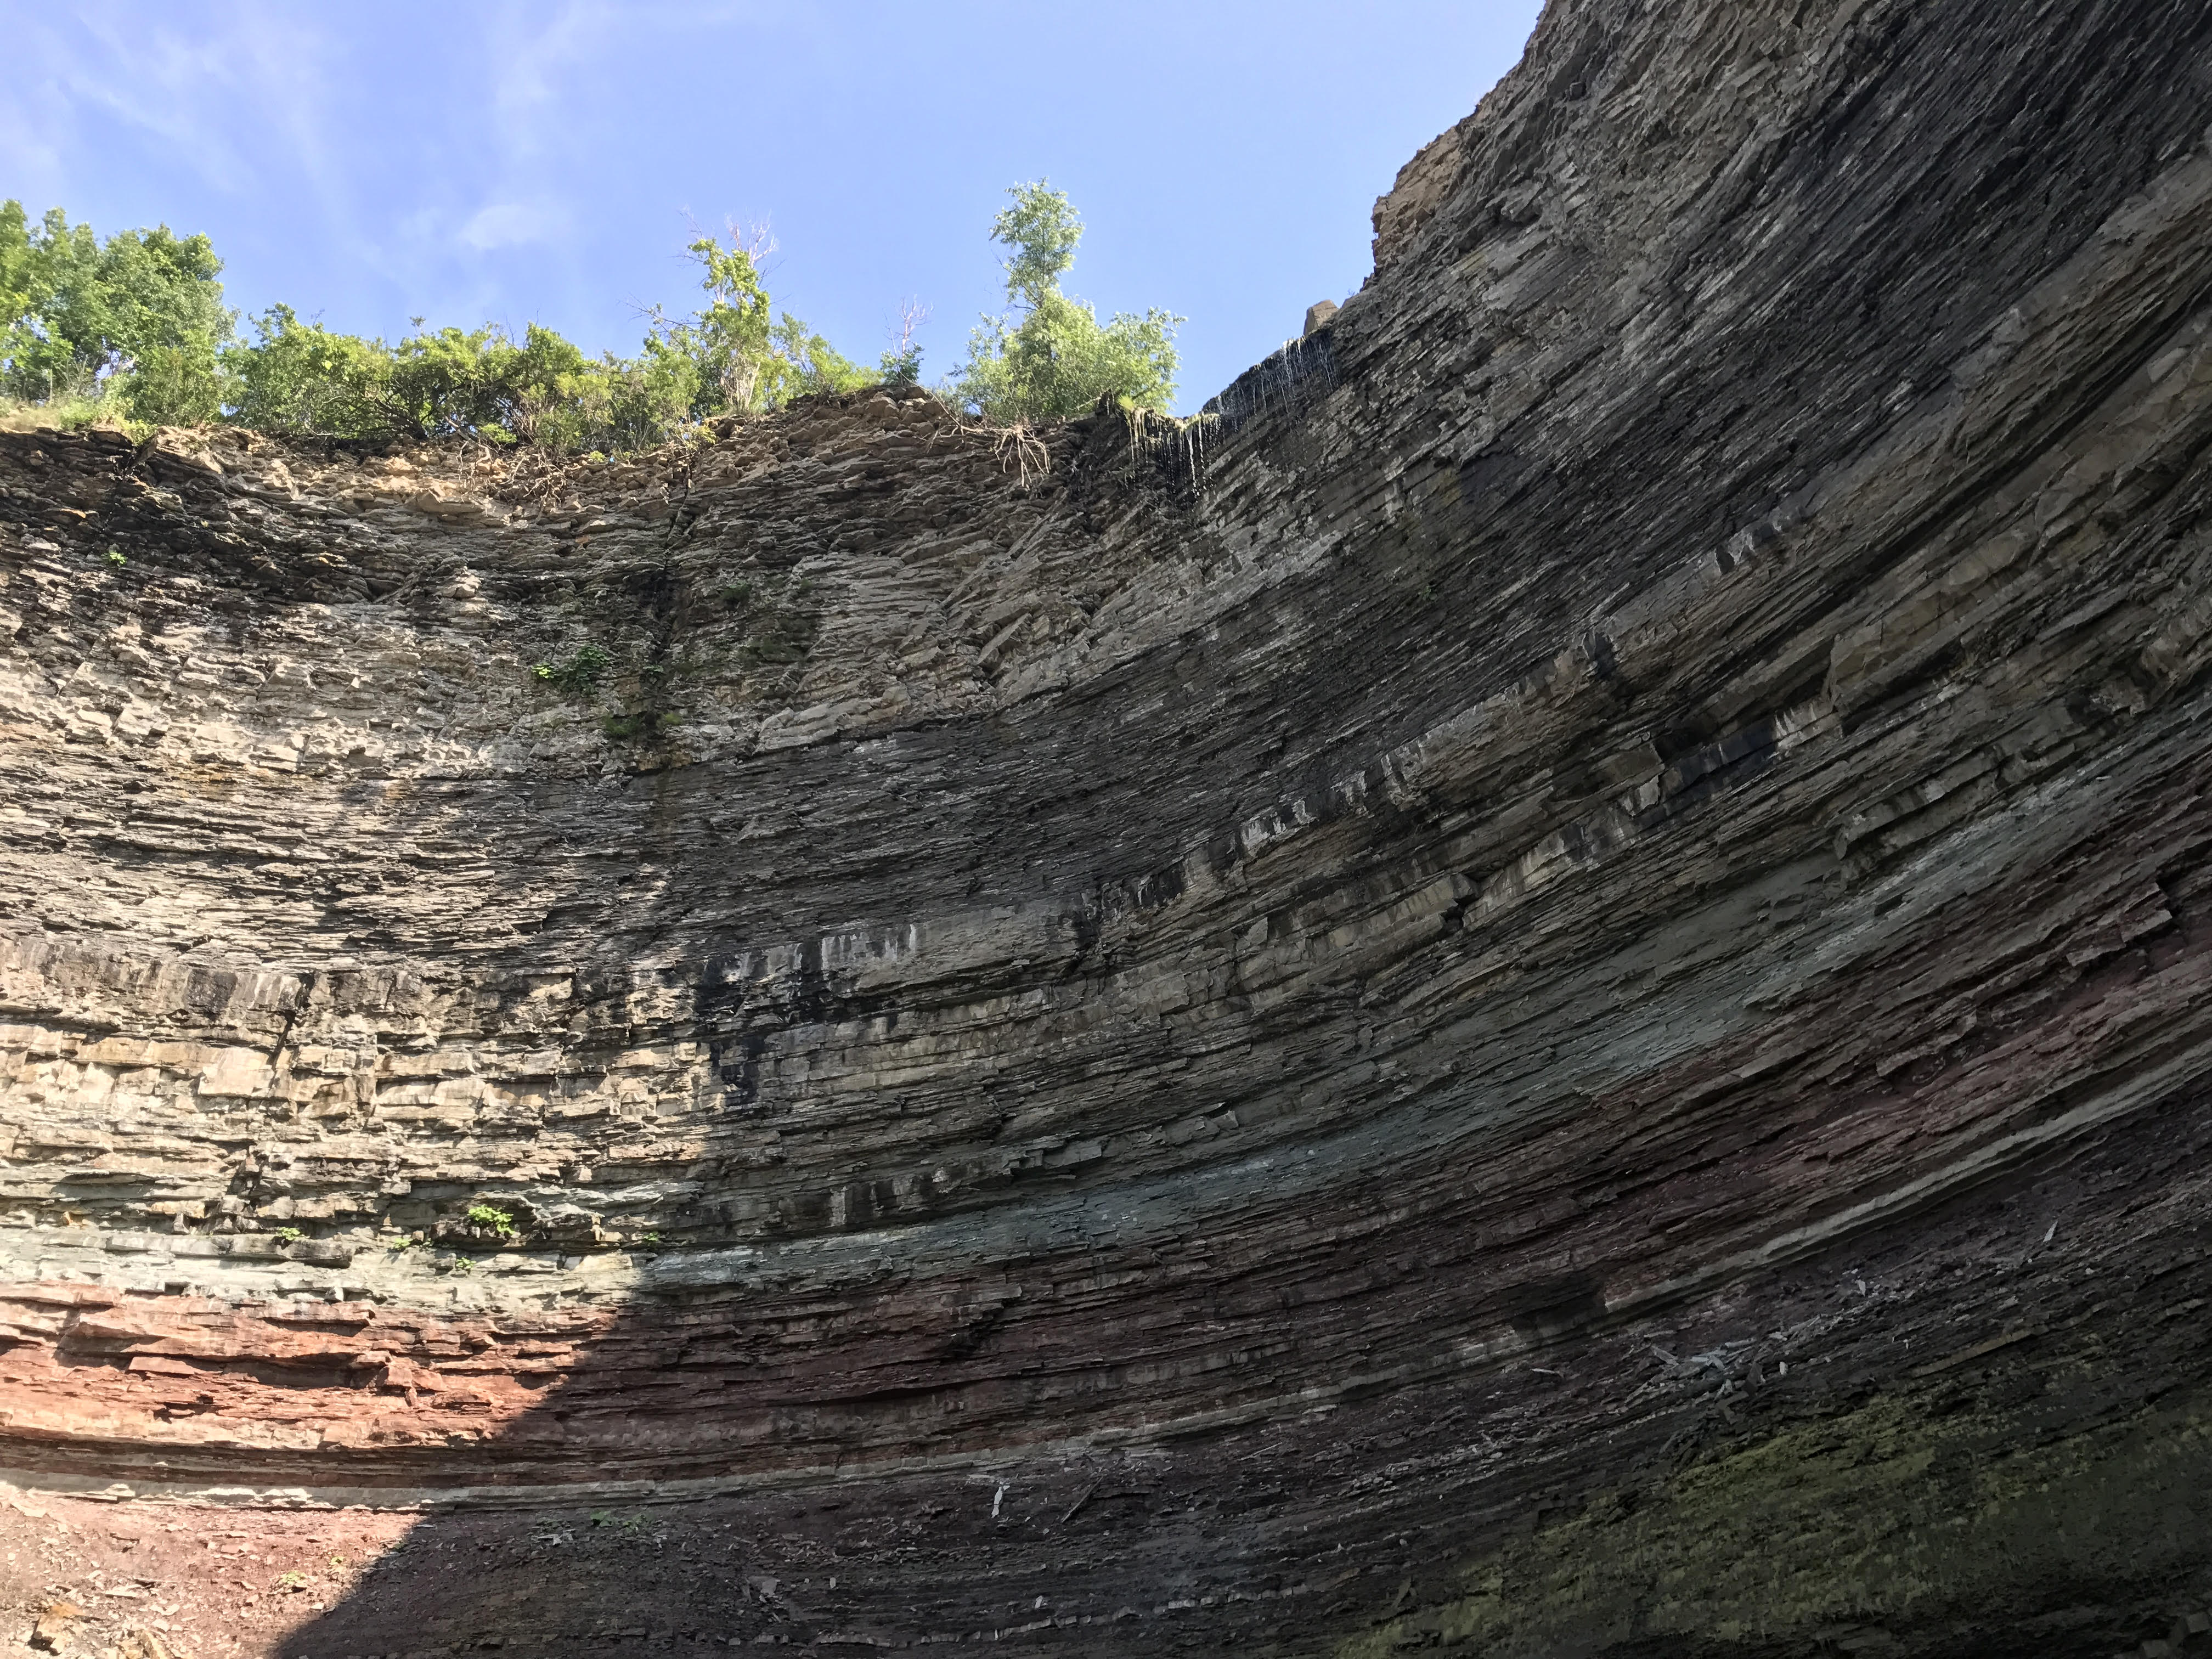 Niagra escarpment cliff face